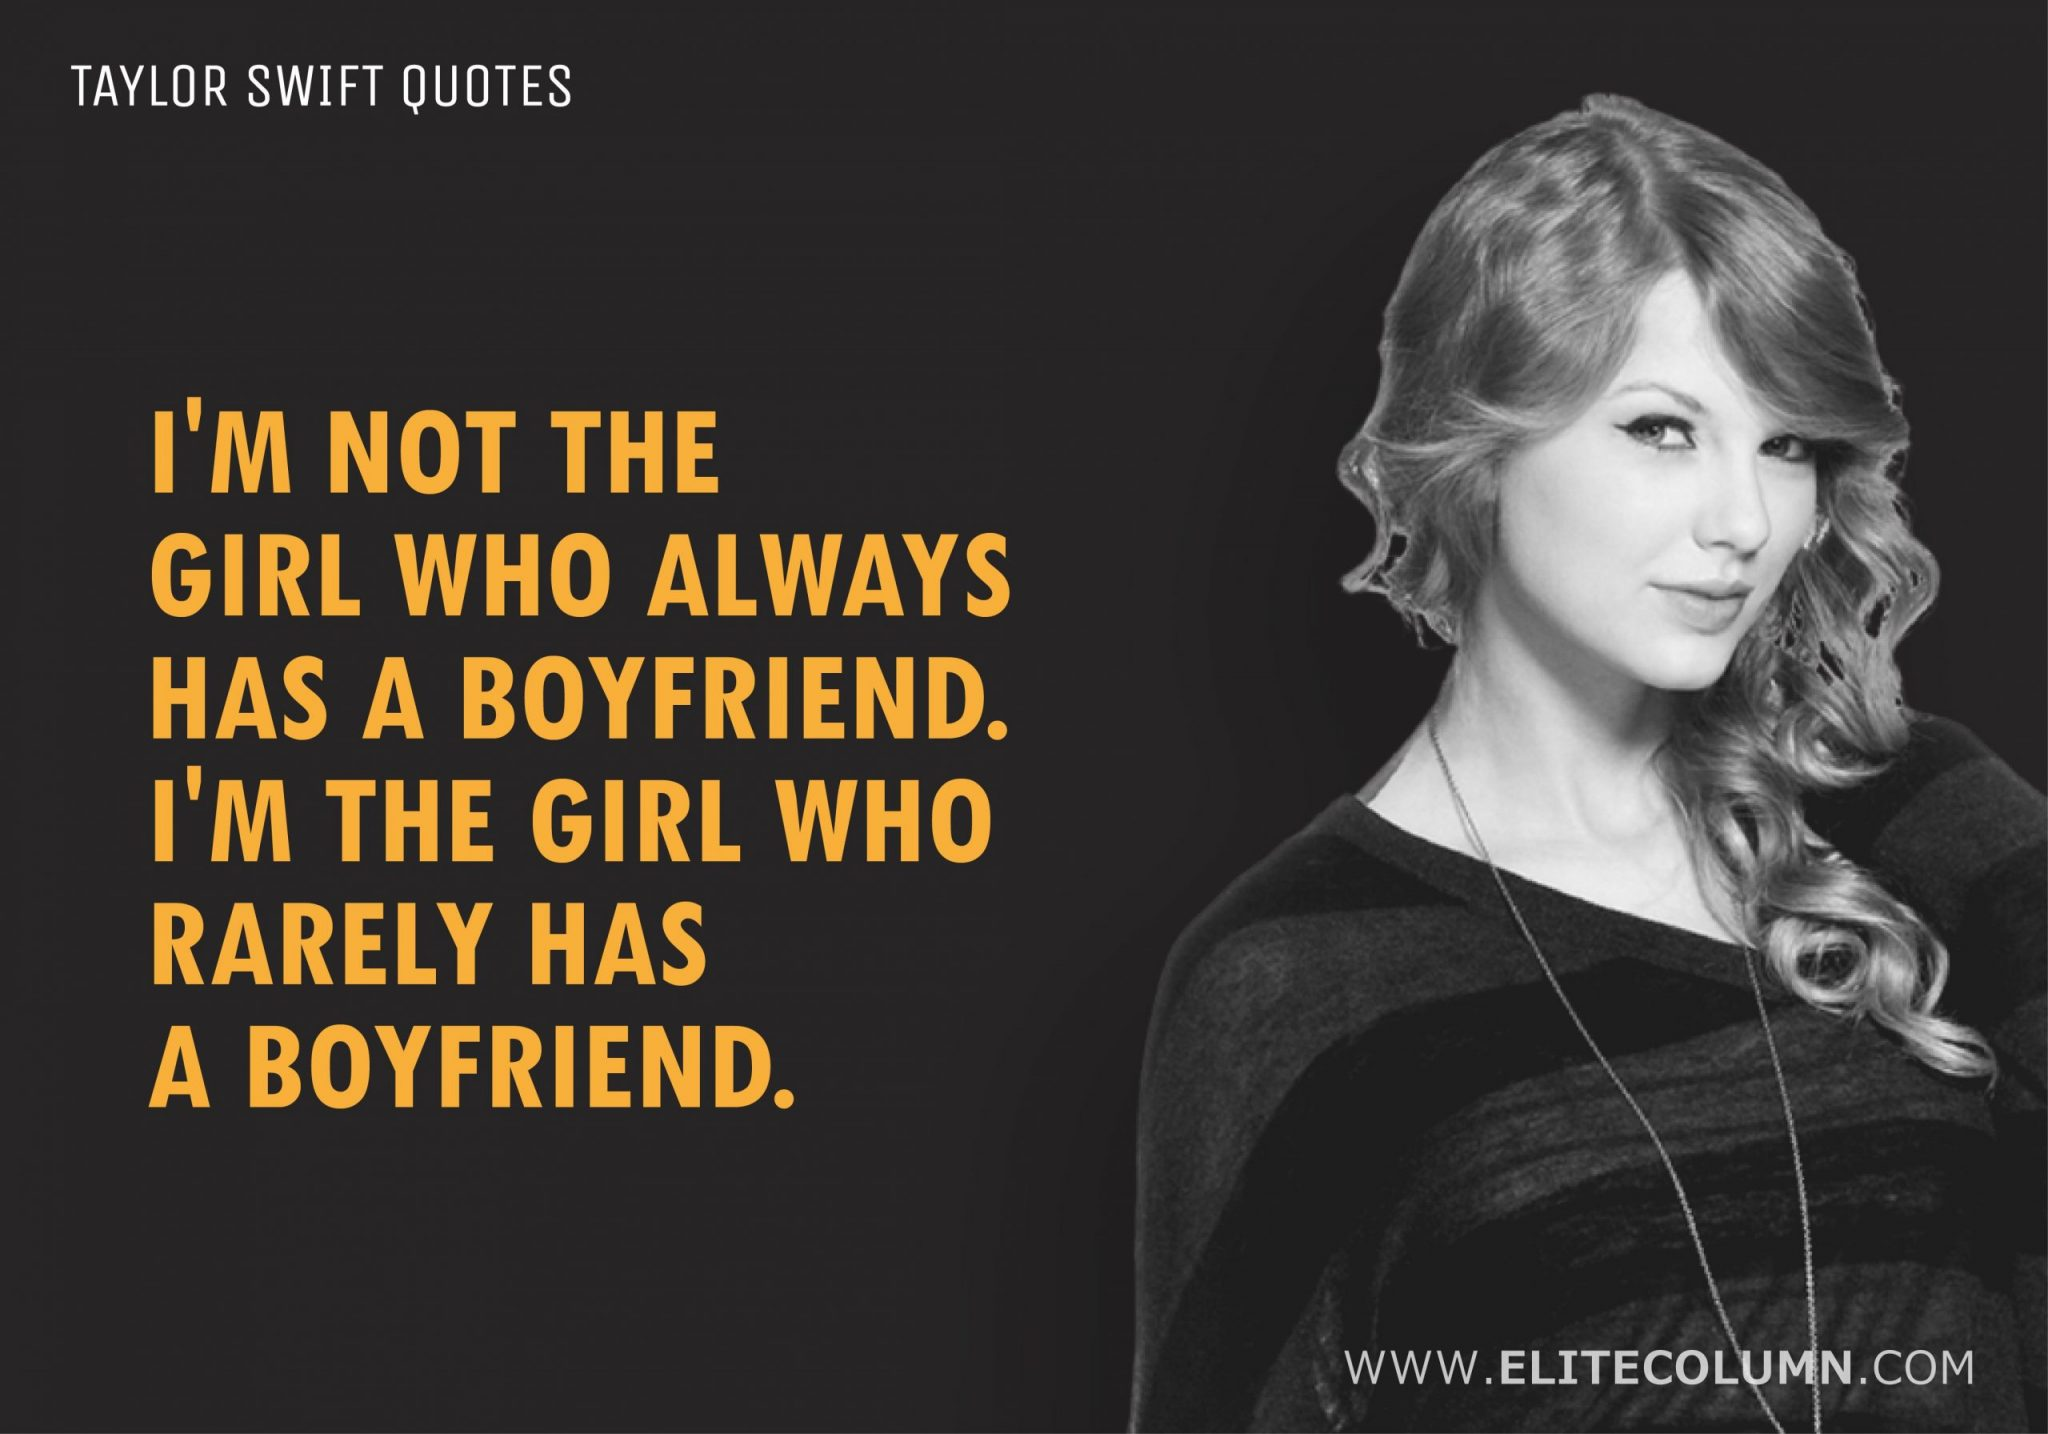 Taylor Swift Quotes (5)